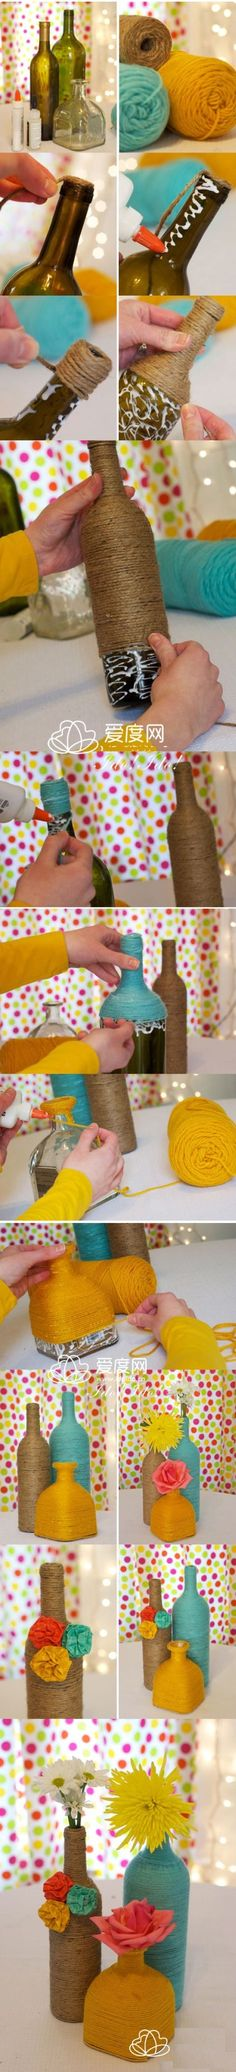 Wrapped Bottles DIY